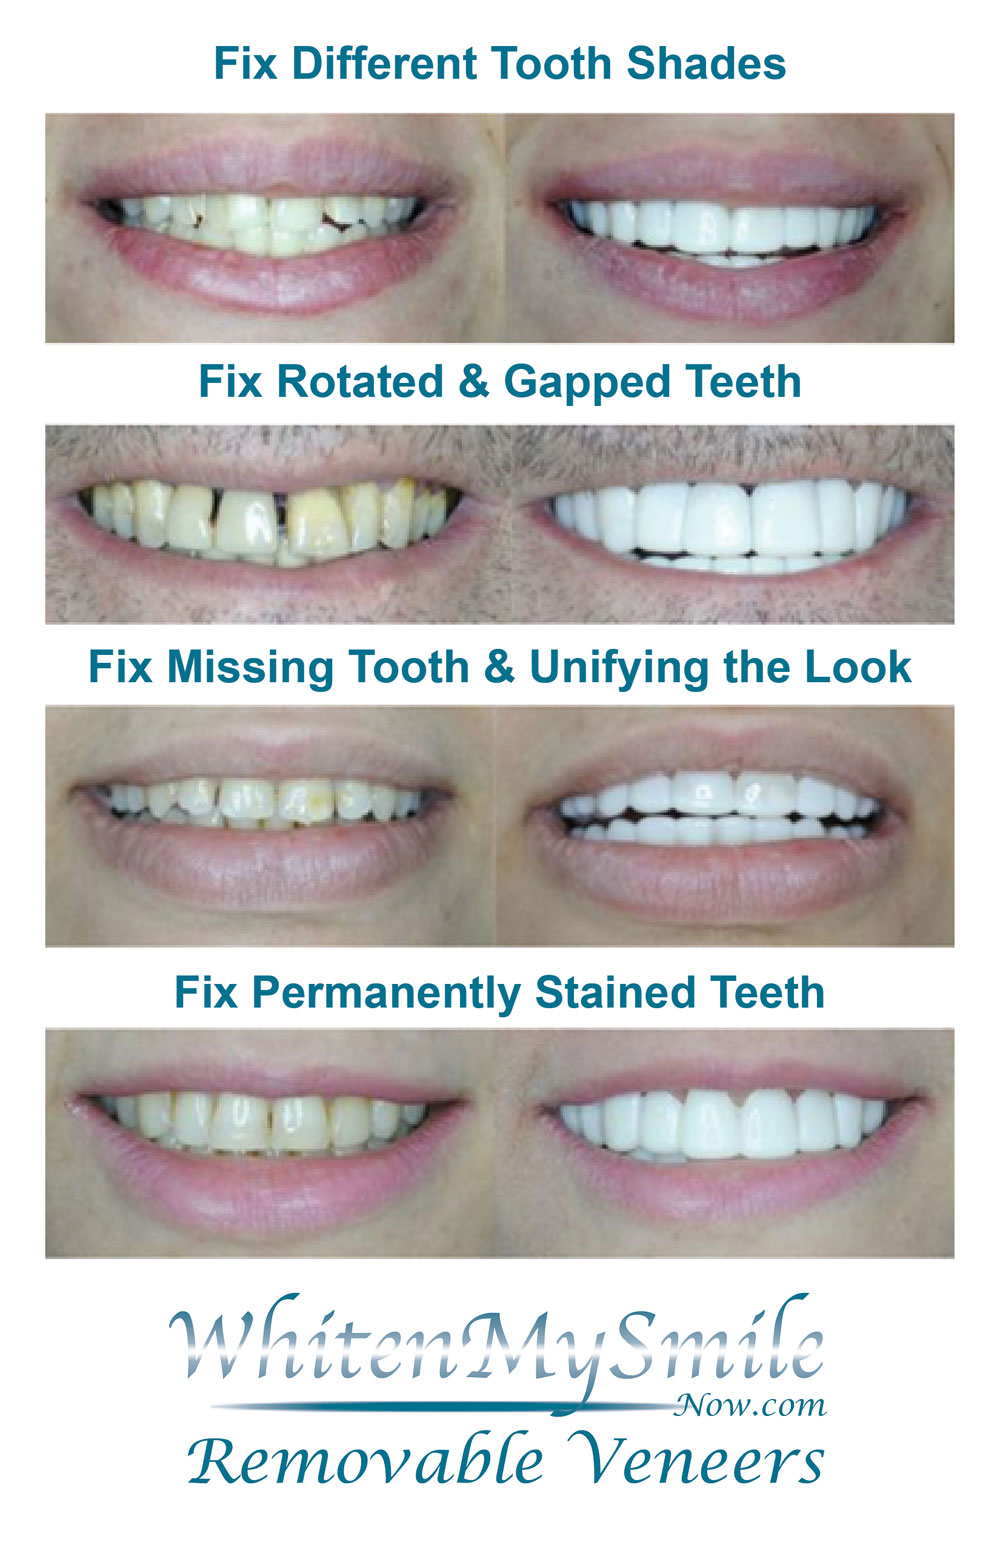 Now Offering Removable Veneers! Never Stop Smiling